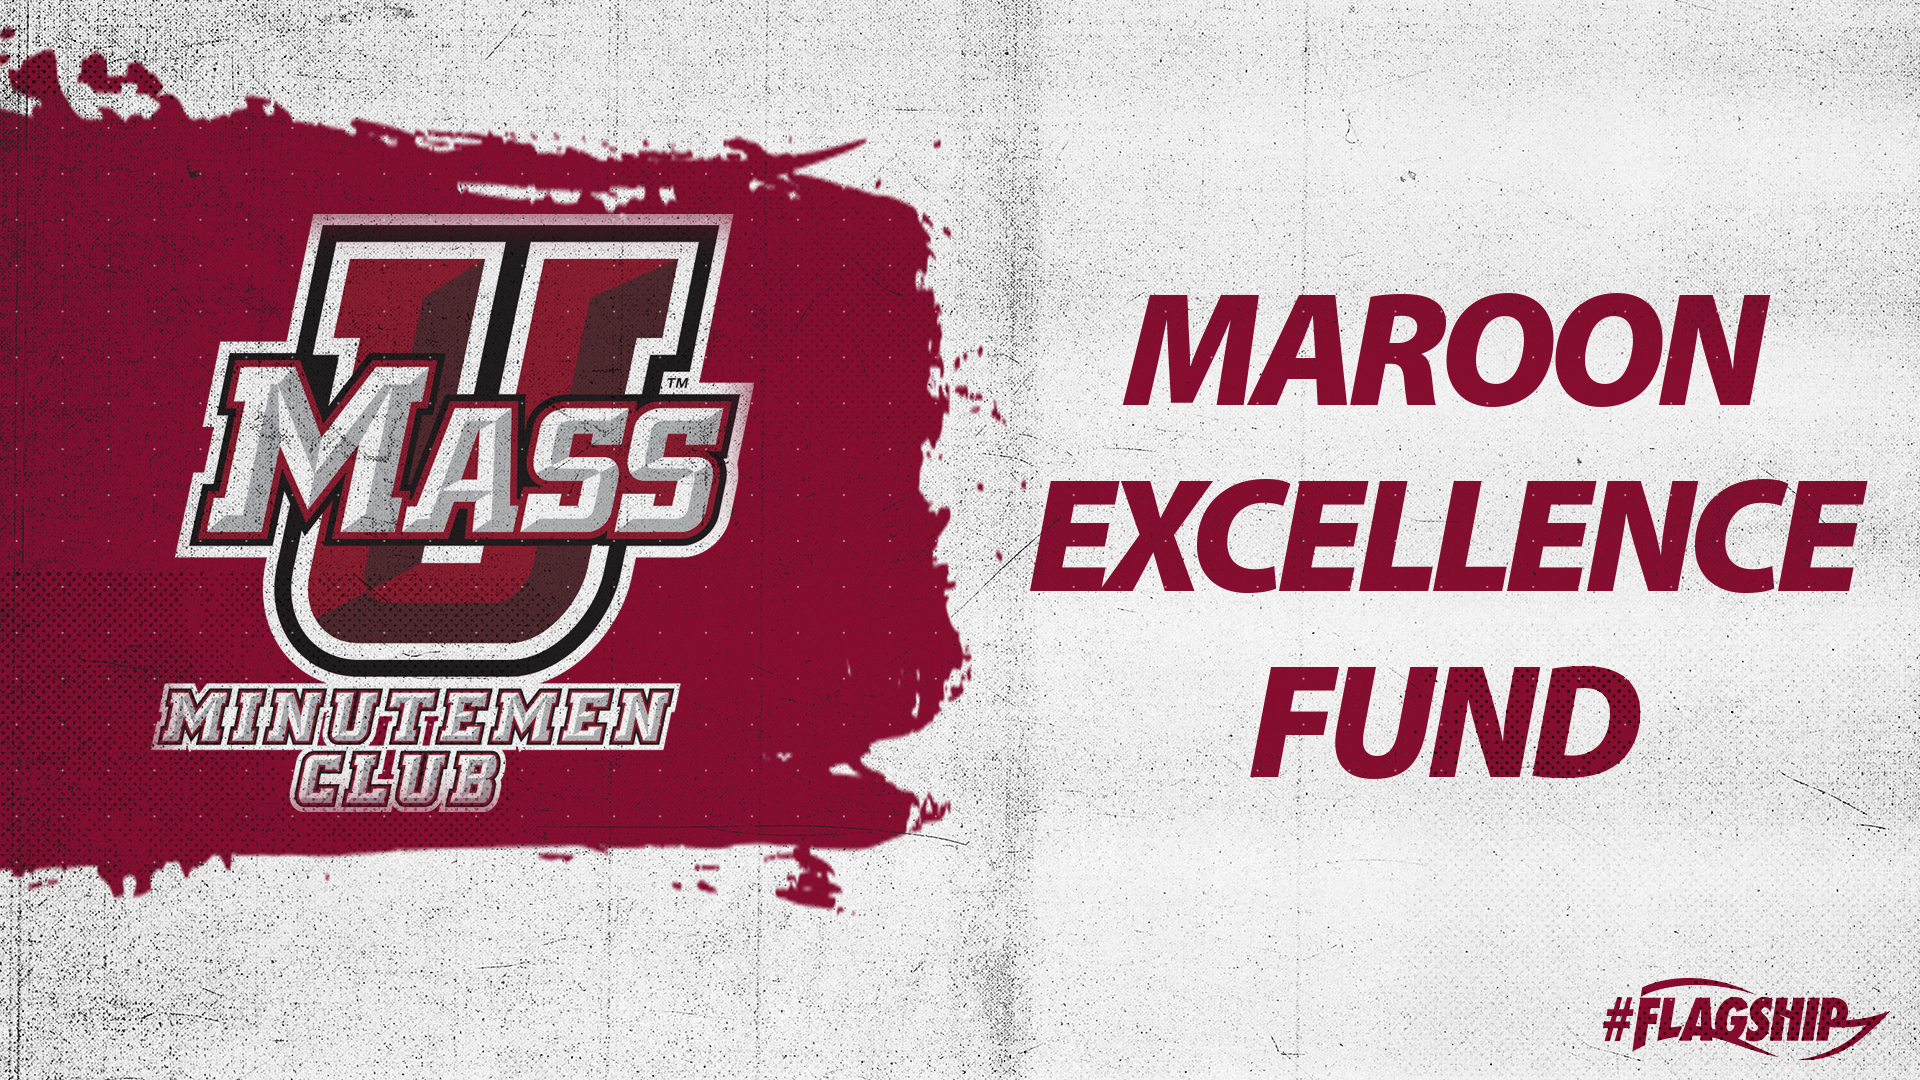 Maroon Excellence Fund